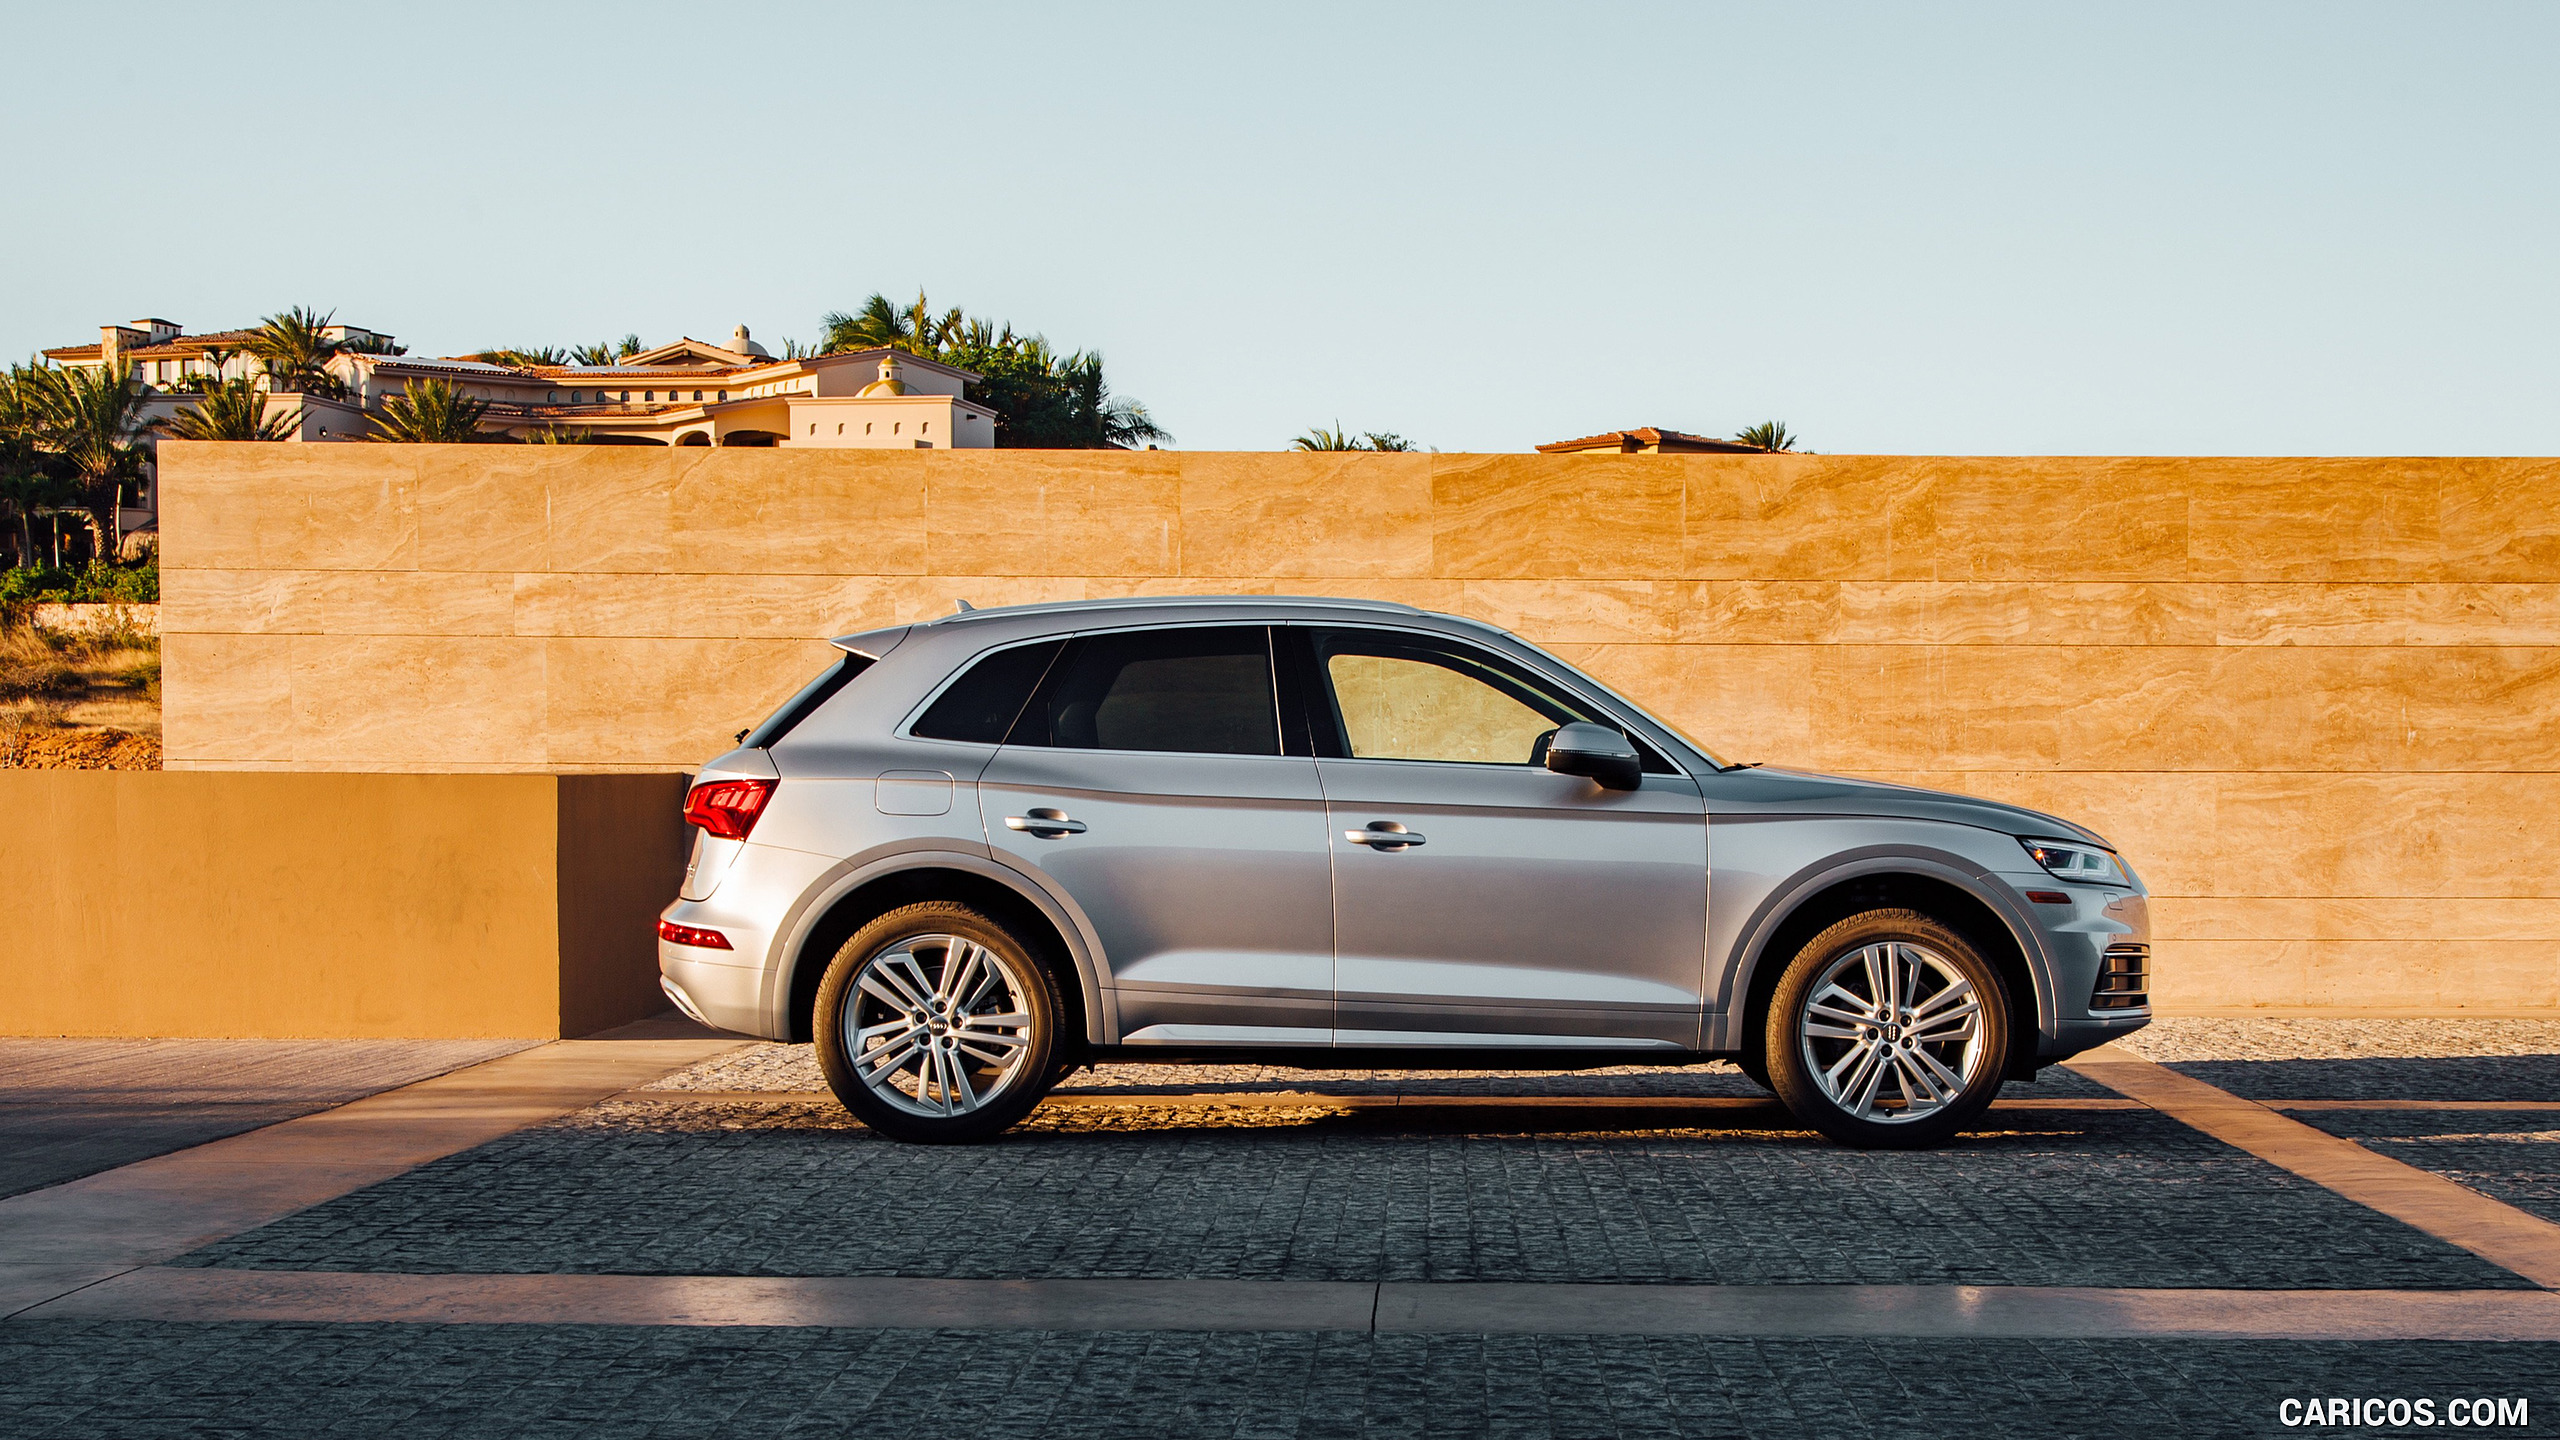 2560x1440 - Audi Q5 Wallpapers 1